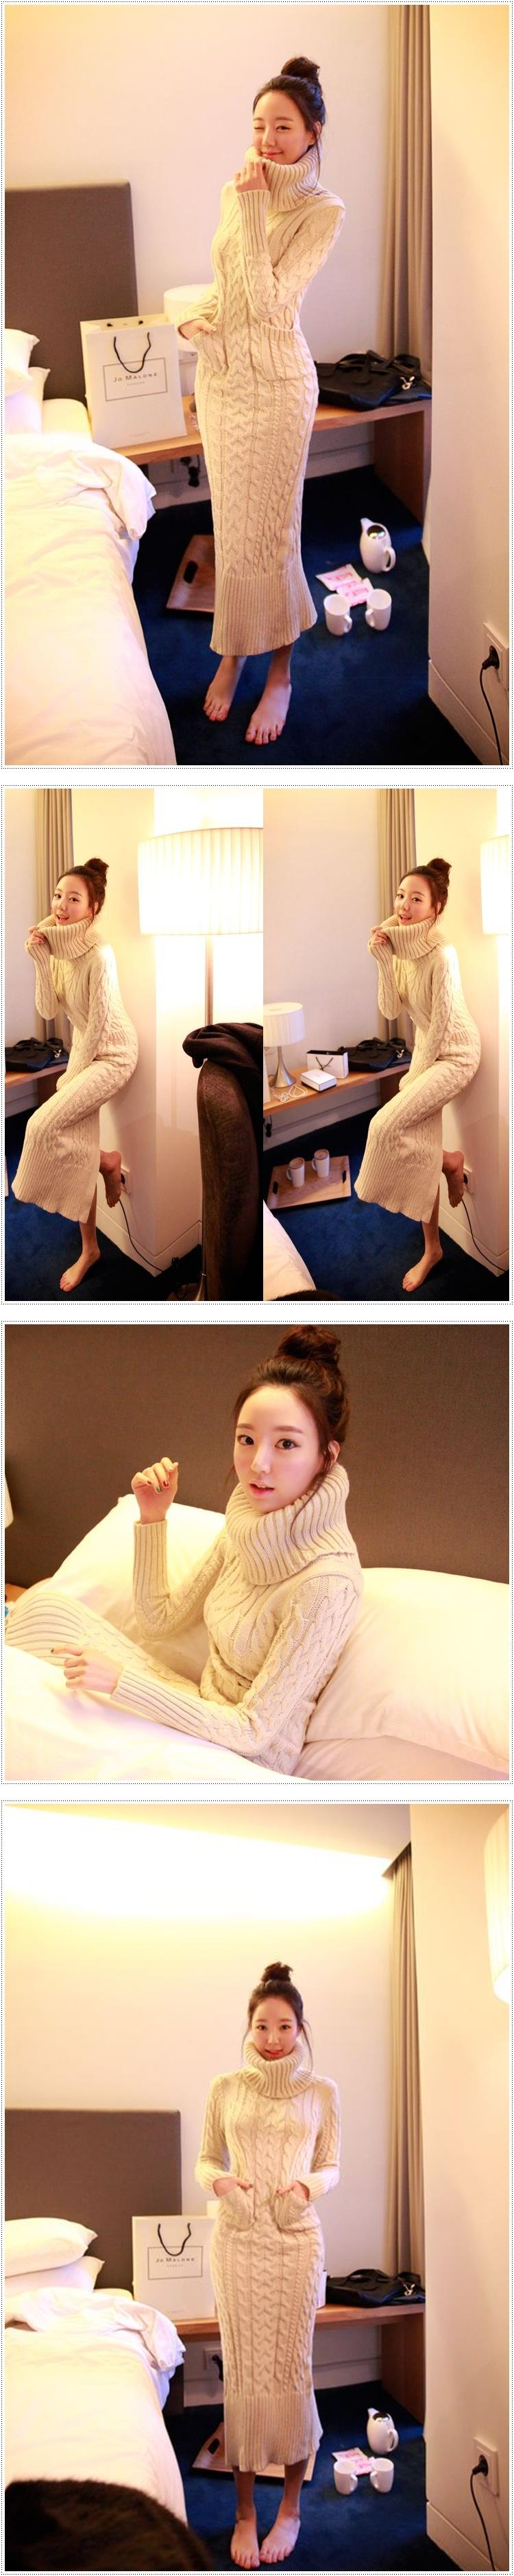 OHCLOTHING 19 European winter wool knitting female thickening noble temperament self-cultivation long bottom Sweaters 23